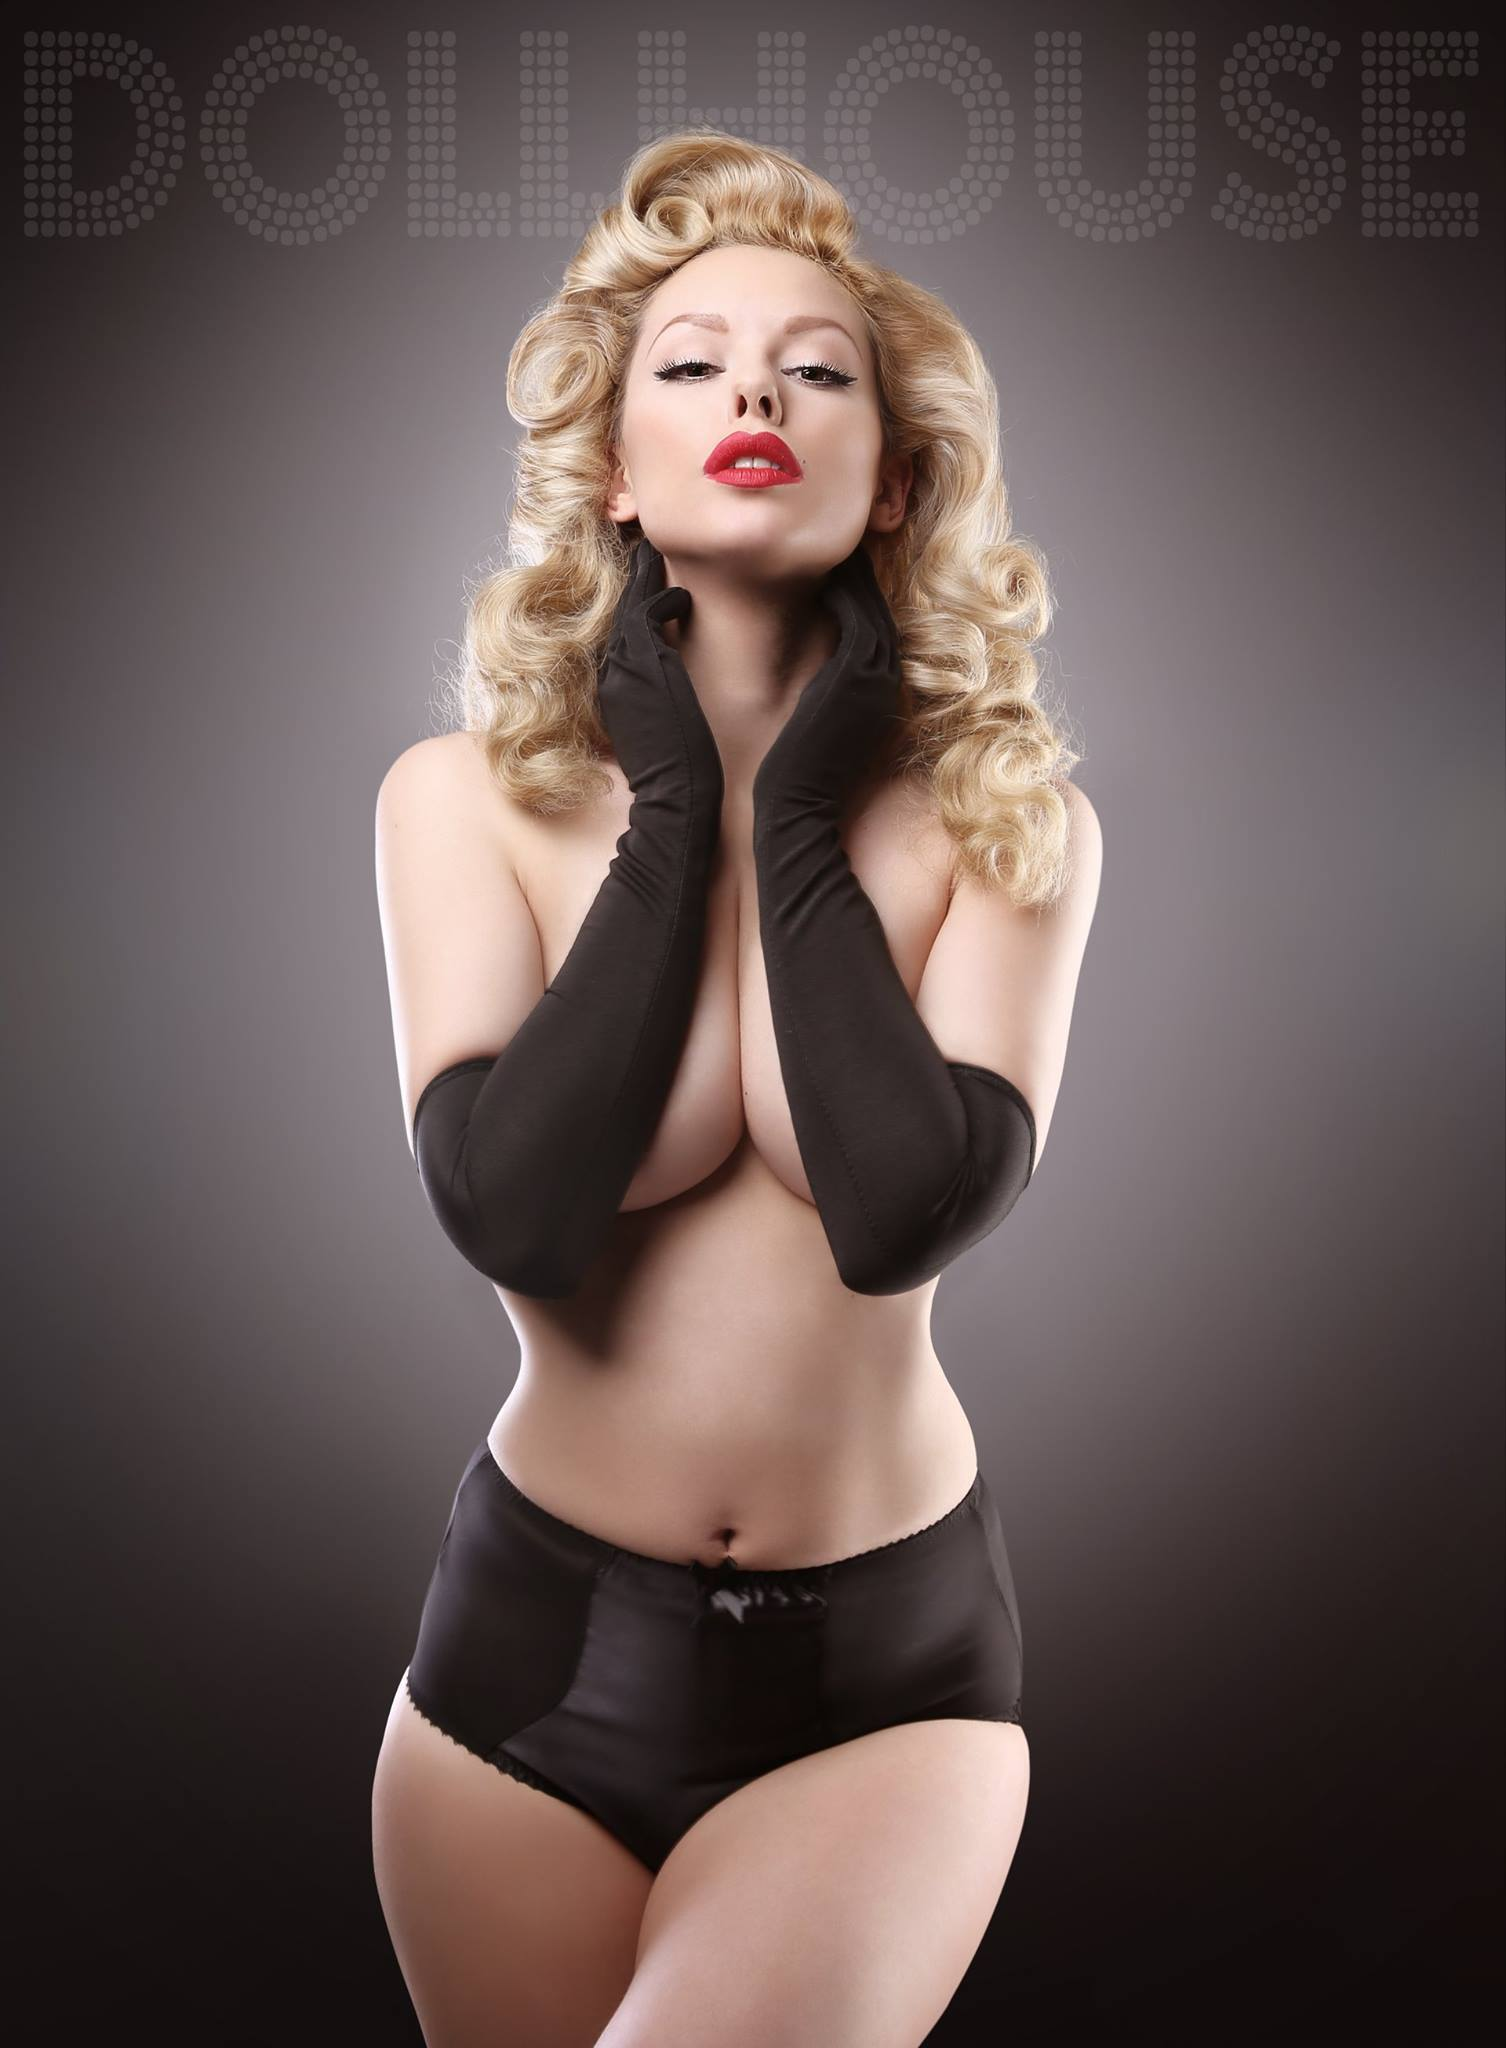 Heather Valentine Pinup Model